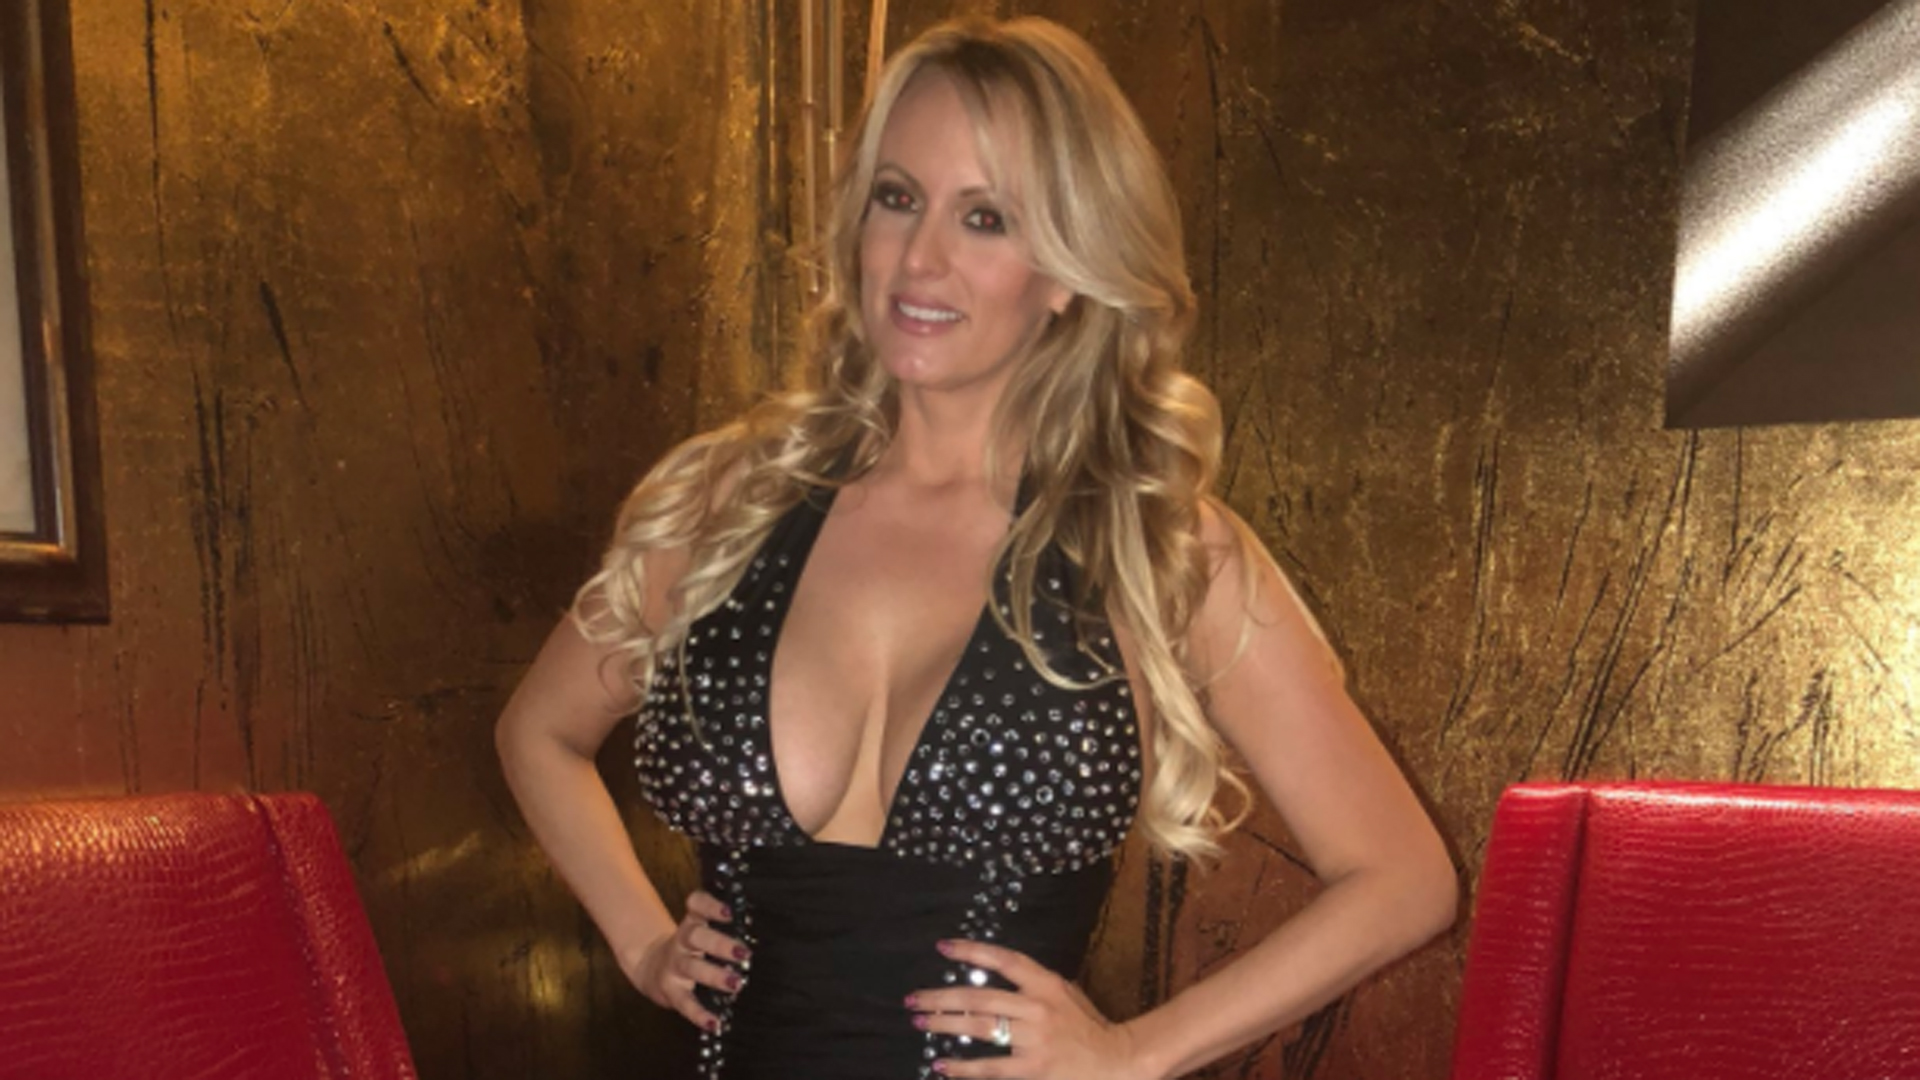 Stormy Daniels is shown in a photo tweeted by CNN's Nick Valencia on March 10, 2018.